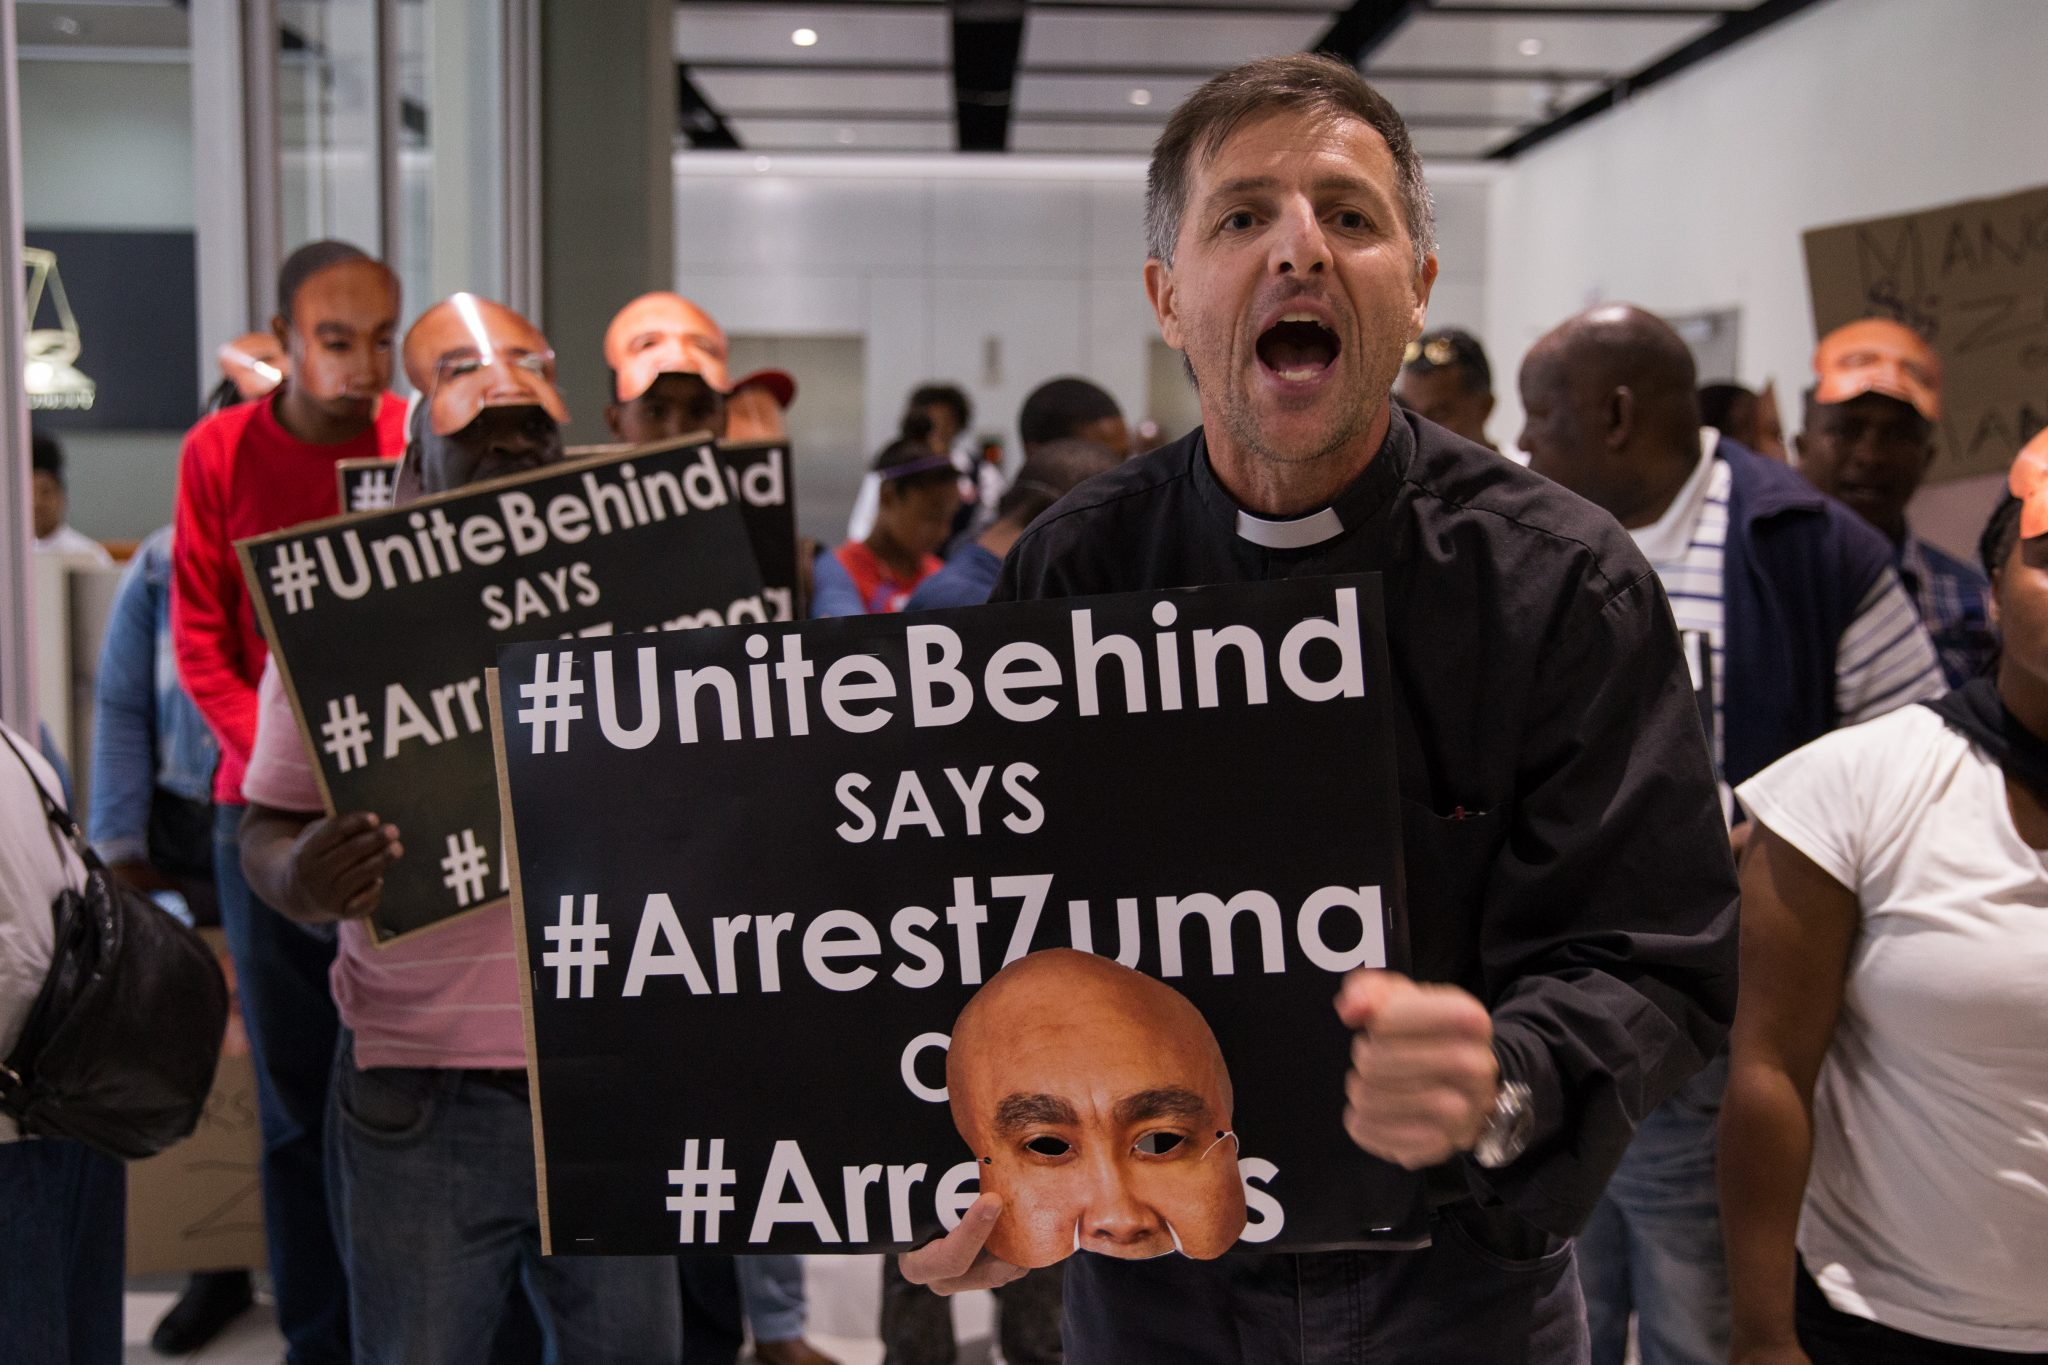 #UniteBehind says #ArrestZuma or #ArrestUs